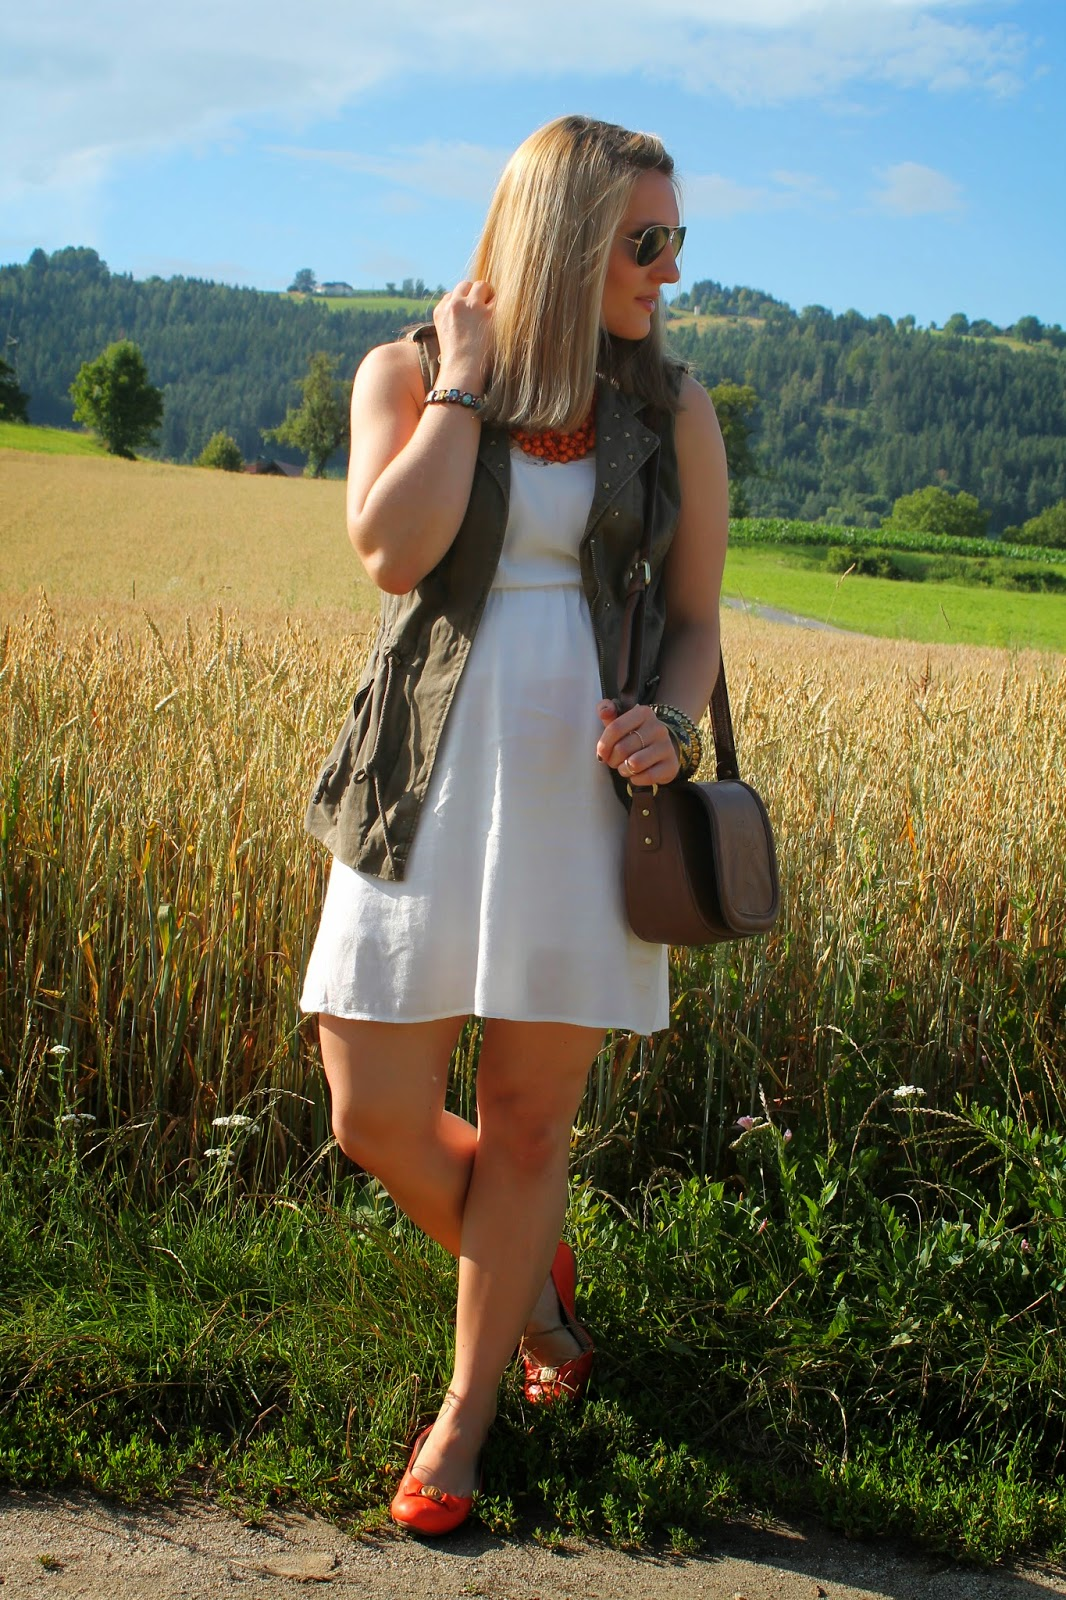 Fashionblogger Austria / Österreich / Deutsch / German / Kärnten / Carinthia / Klagenfurt / Köttmannsdorf / Spring Look / Classy / Edgy / Summer / Summer Style 2014 / Summer Look / Fashionista Look / Takko / Vero Moda / Zara / Even and Odd / Tommy Hilfiger / Ray Ban / How to style /